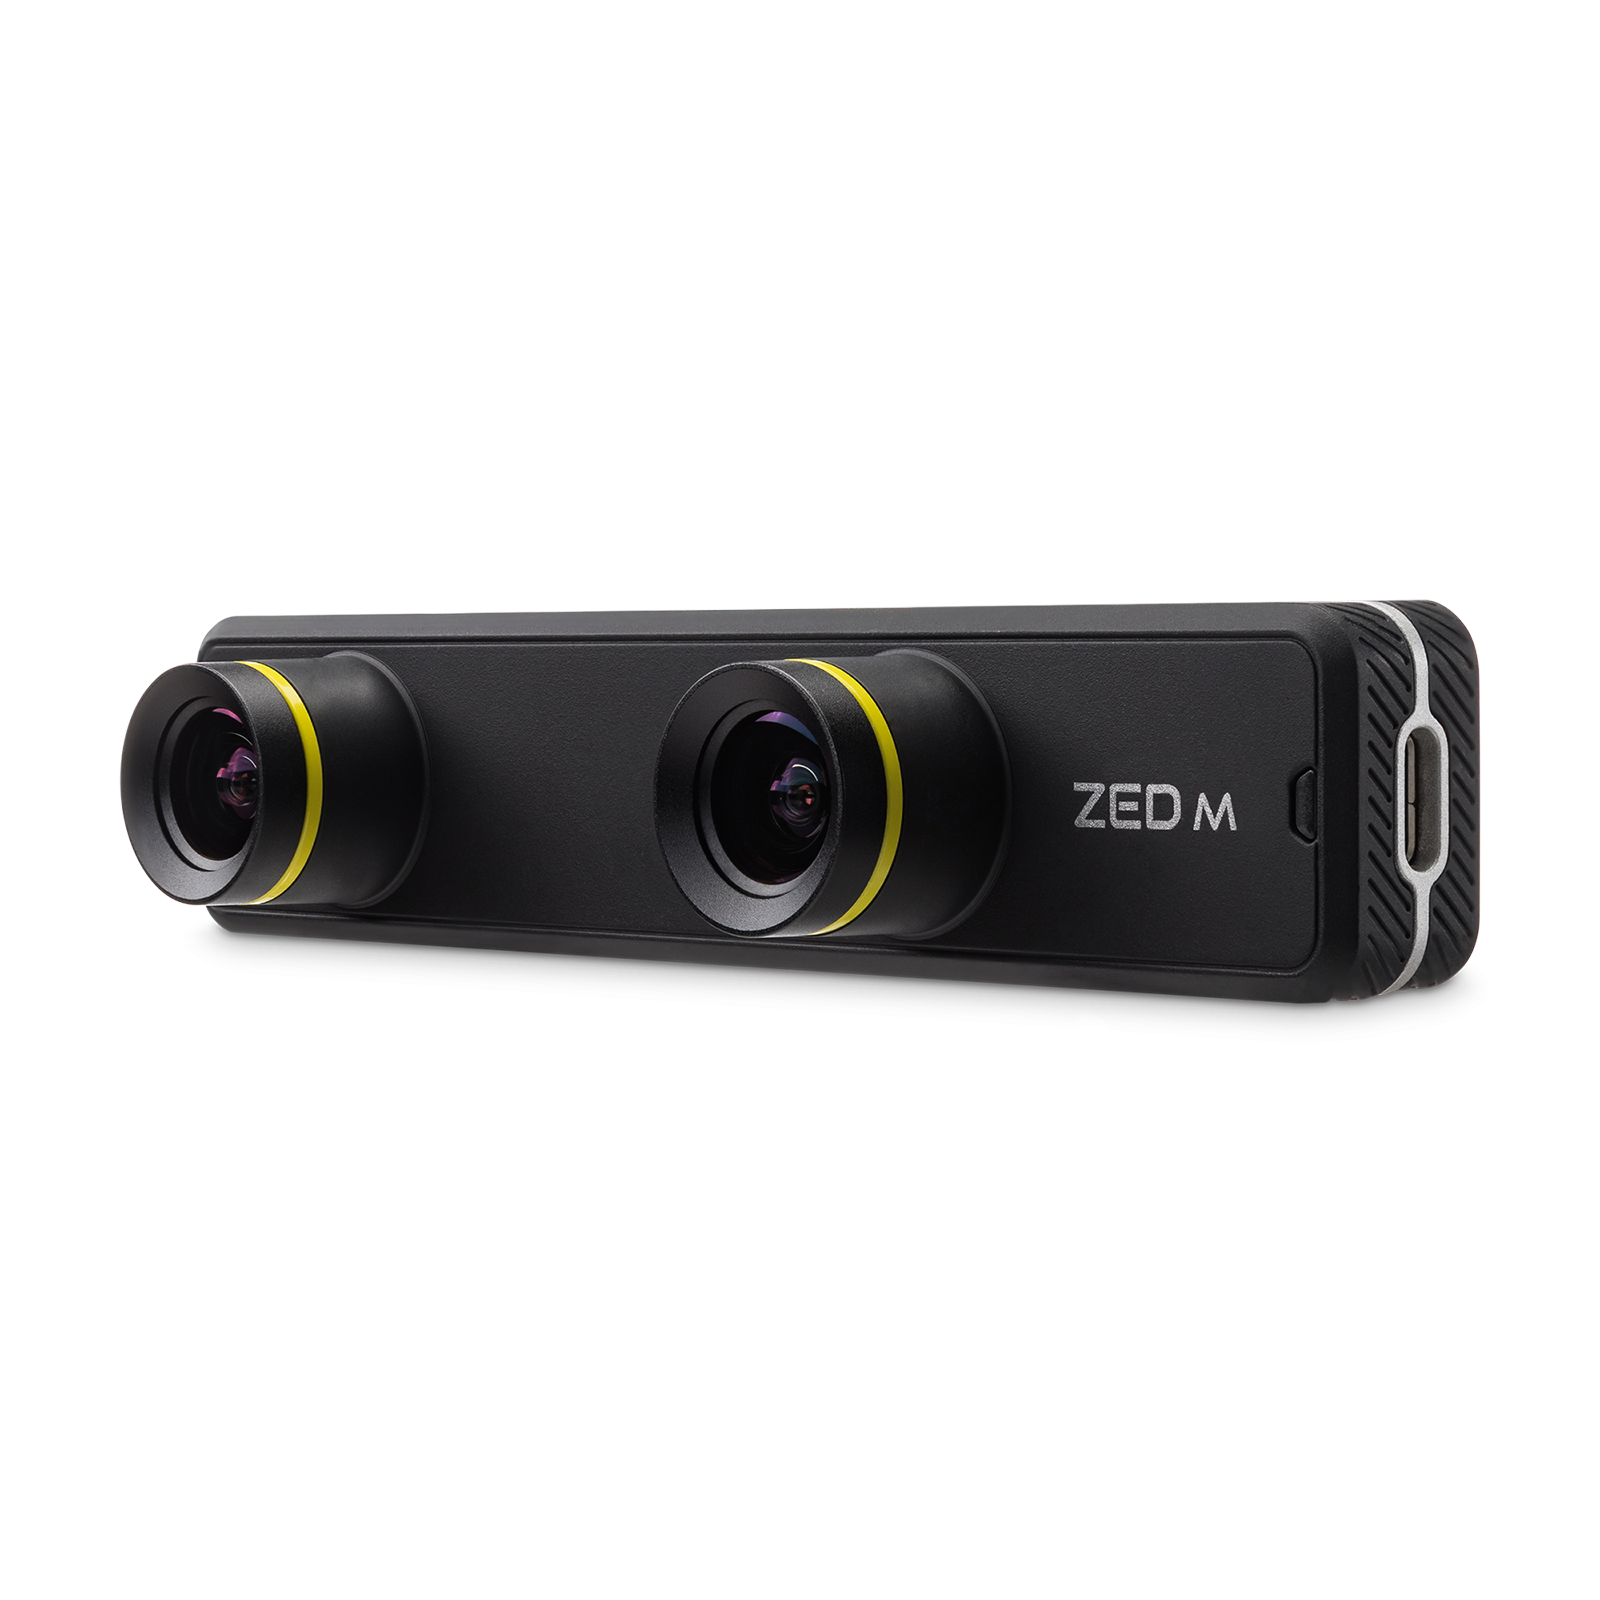 Camera product image